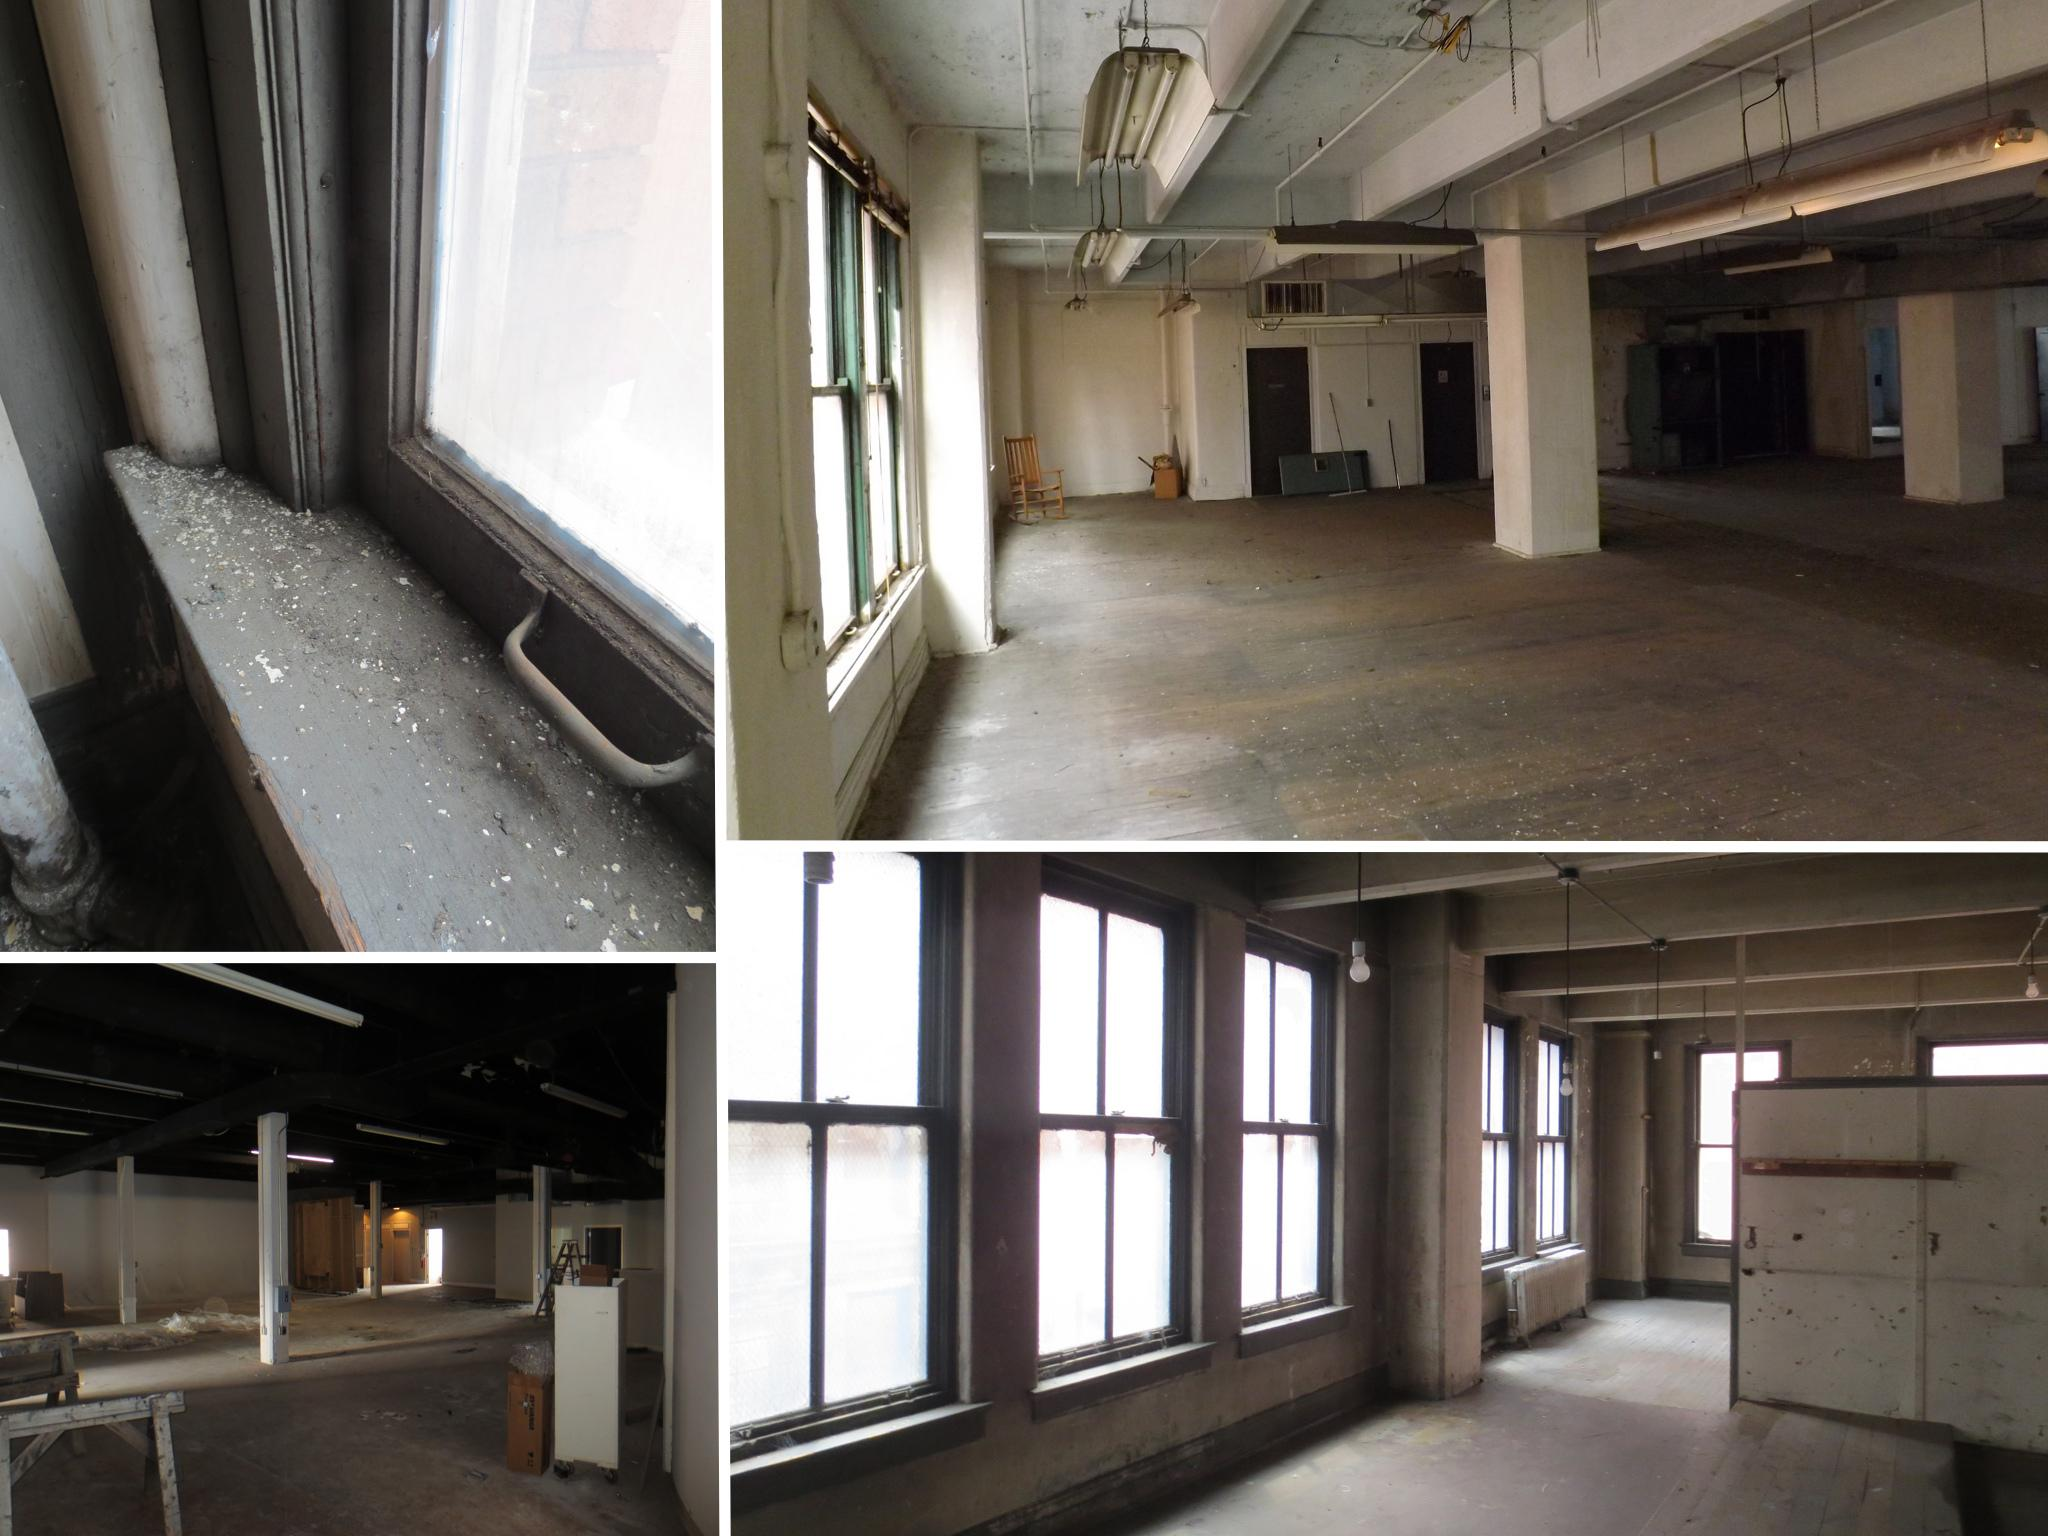 NEWBERRY LOFTS (Before) / ADDRESS: 34 W 6th Street (45202) / CREDIT: $982,295 / PREVIOUSLY: The Merchants Building / Images courtesy of the Ohio Department of Taxation, CC by 2.0, with changes